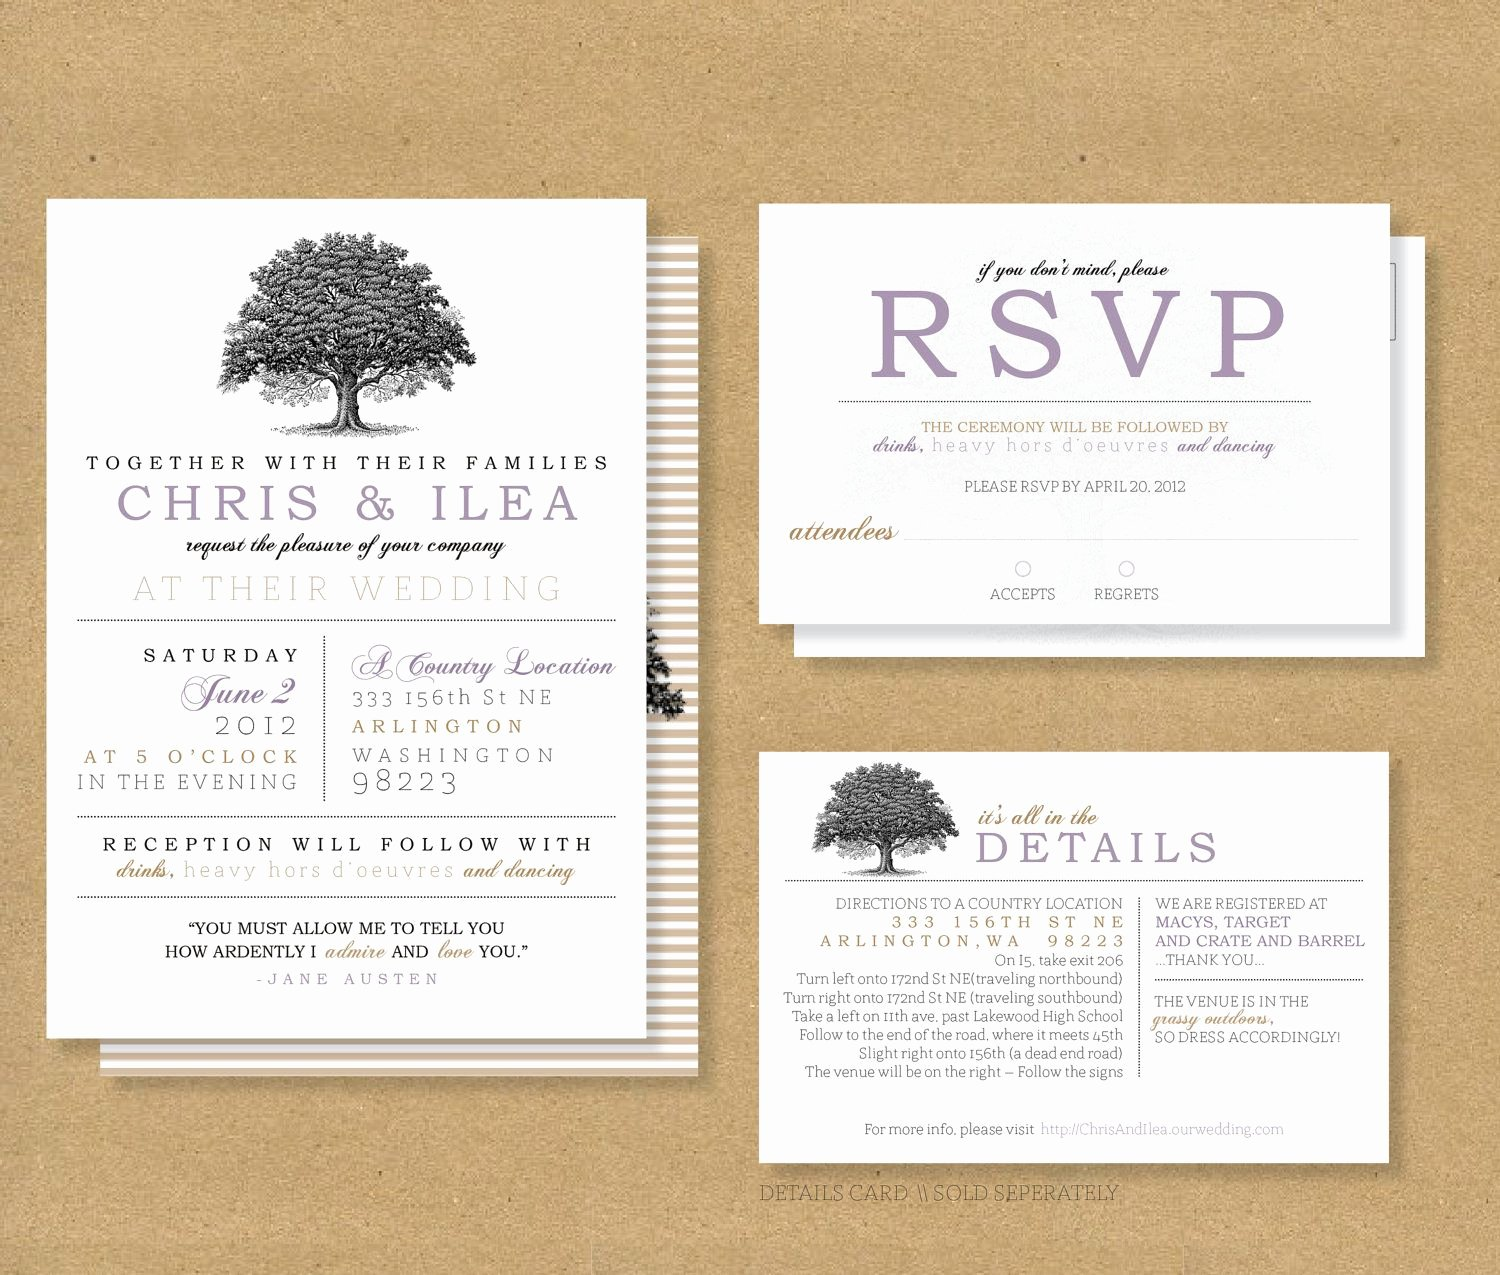 Wedding Rsvp Cards Template Luxury Wedding Invitation Wedding Rsvp Wording Samples Tips